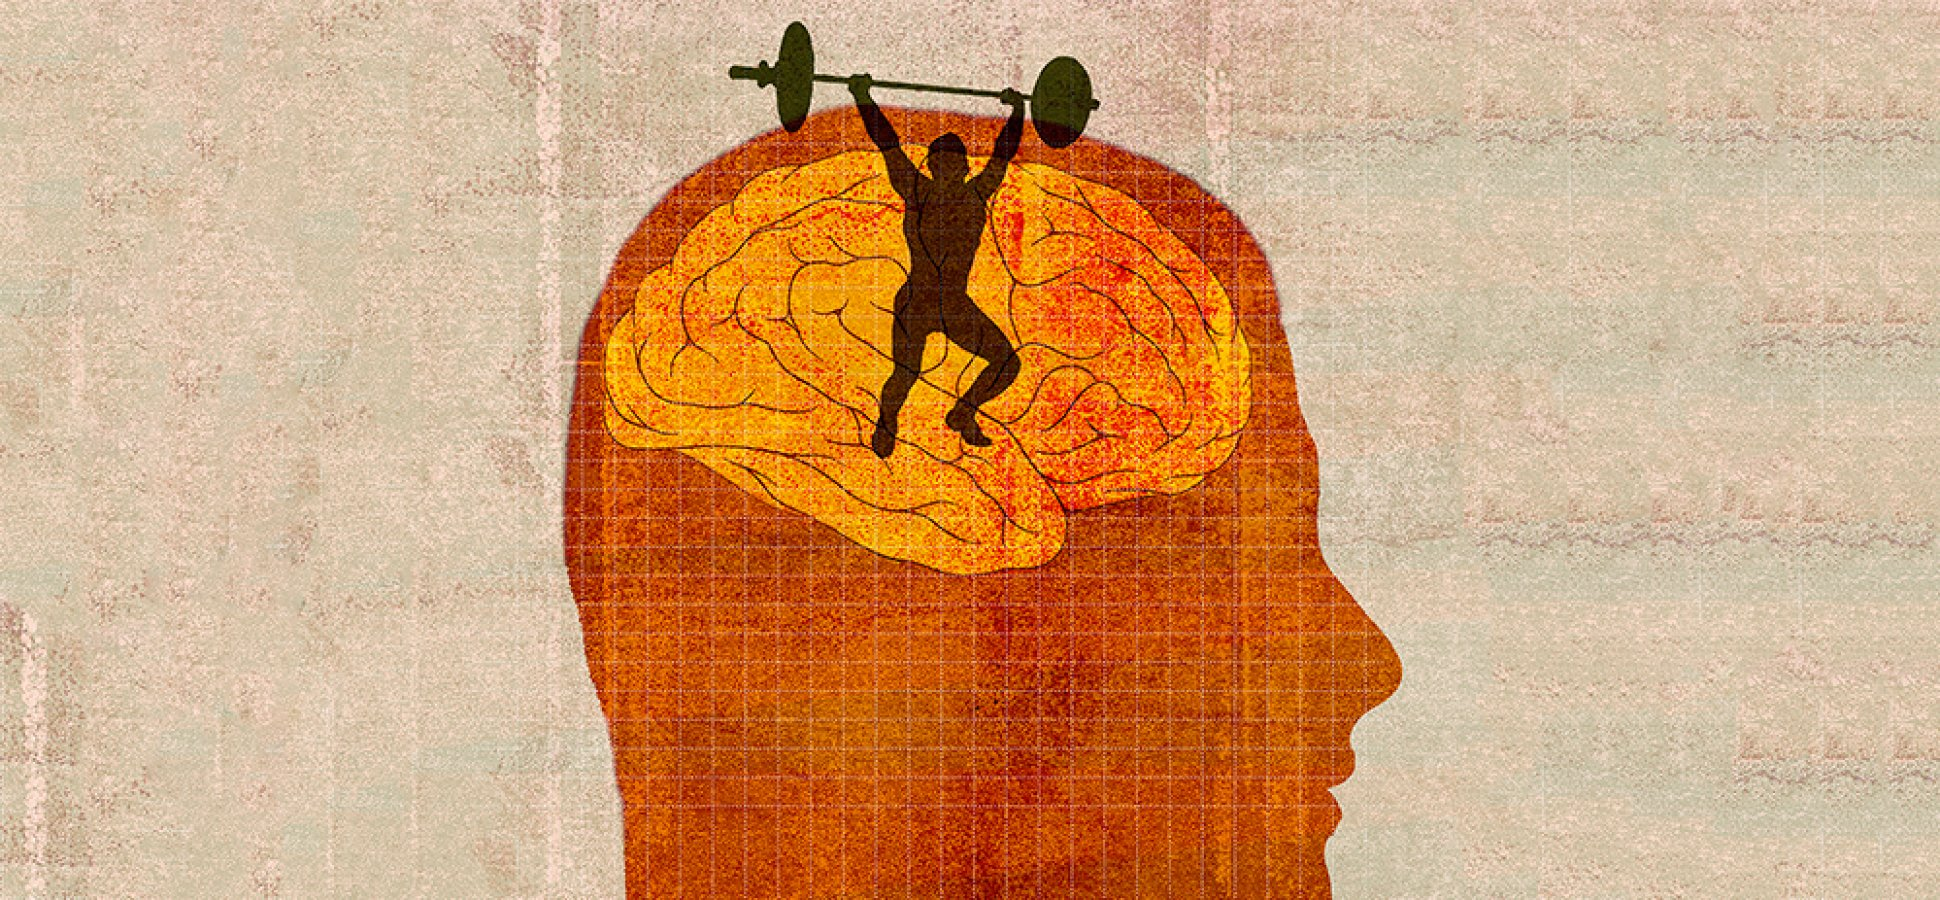 The 4 Brain Superpowers You Need to Be a Successful Leader, According to Neuroscience